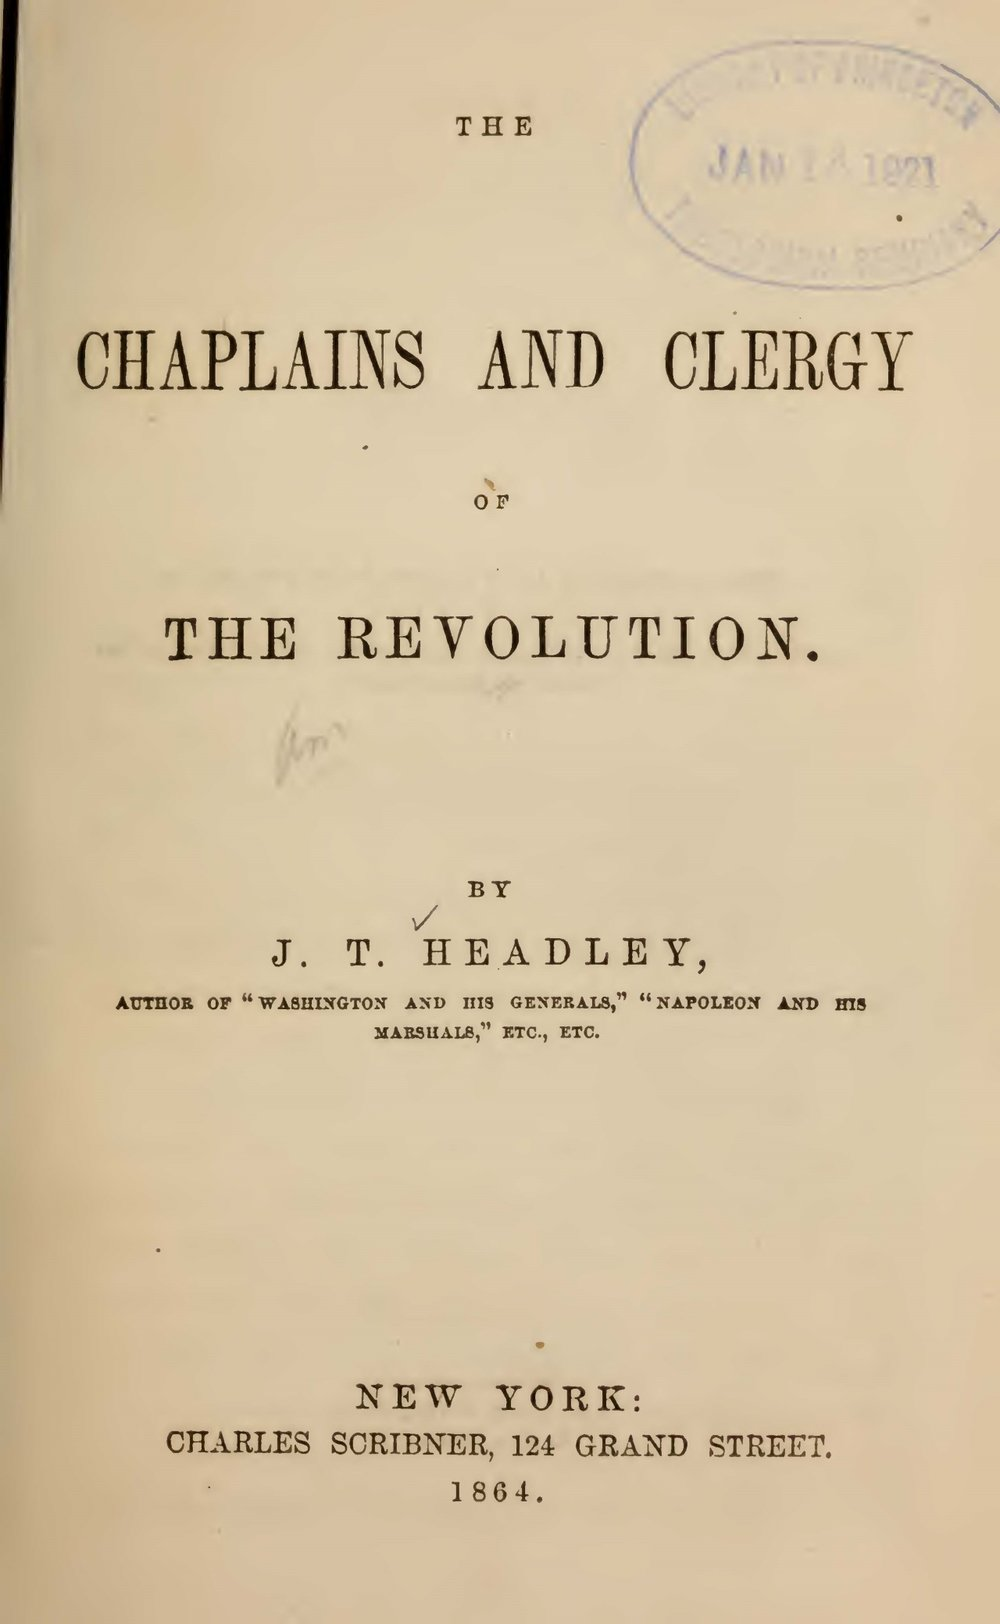 Headley, Joel Tyler, The Chaplains and Clergy of the Revolution Title Page.jpg